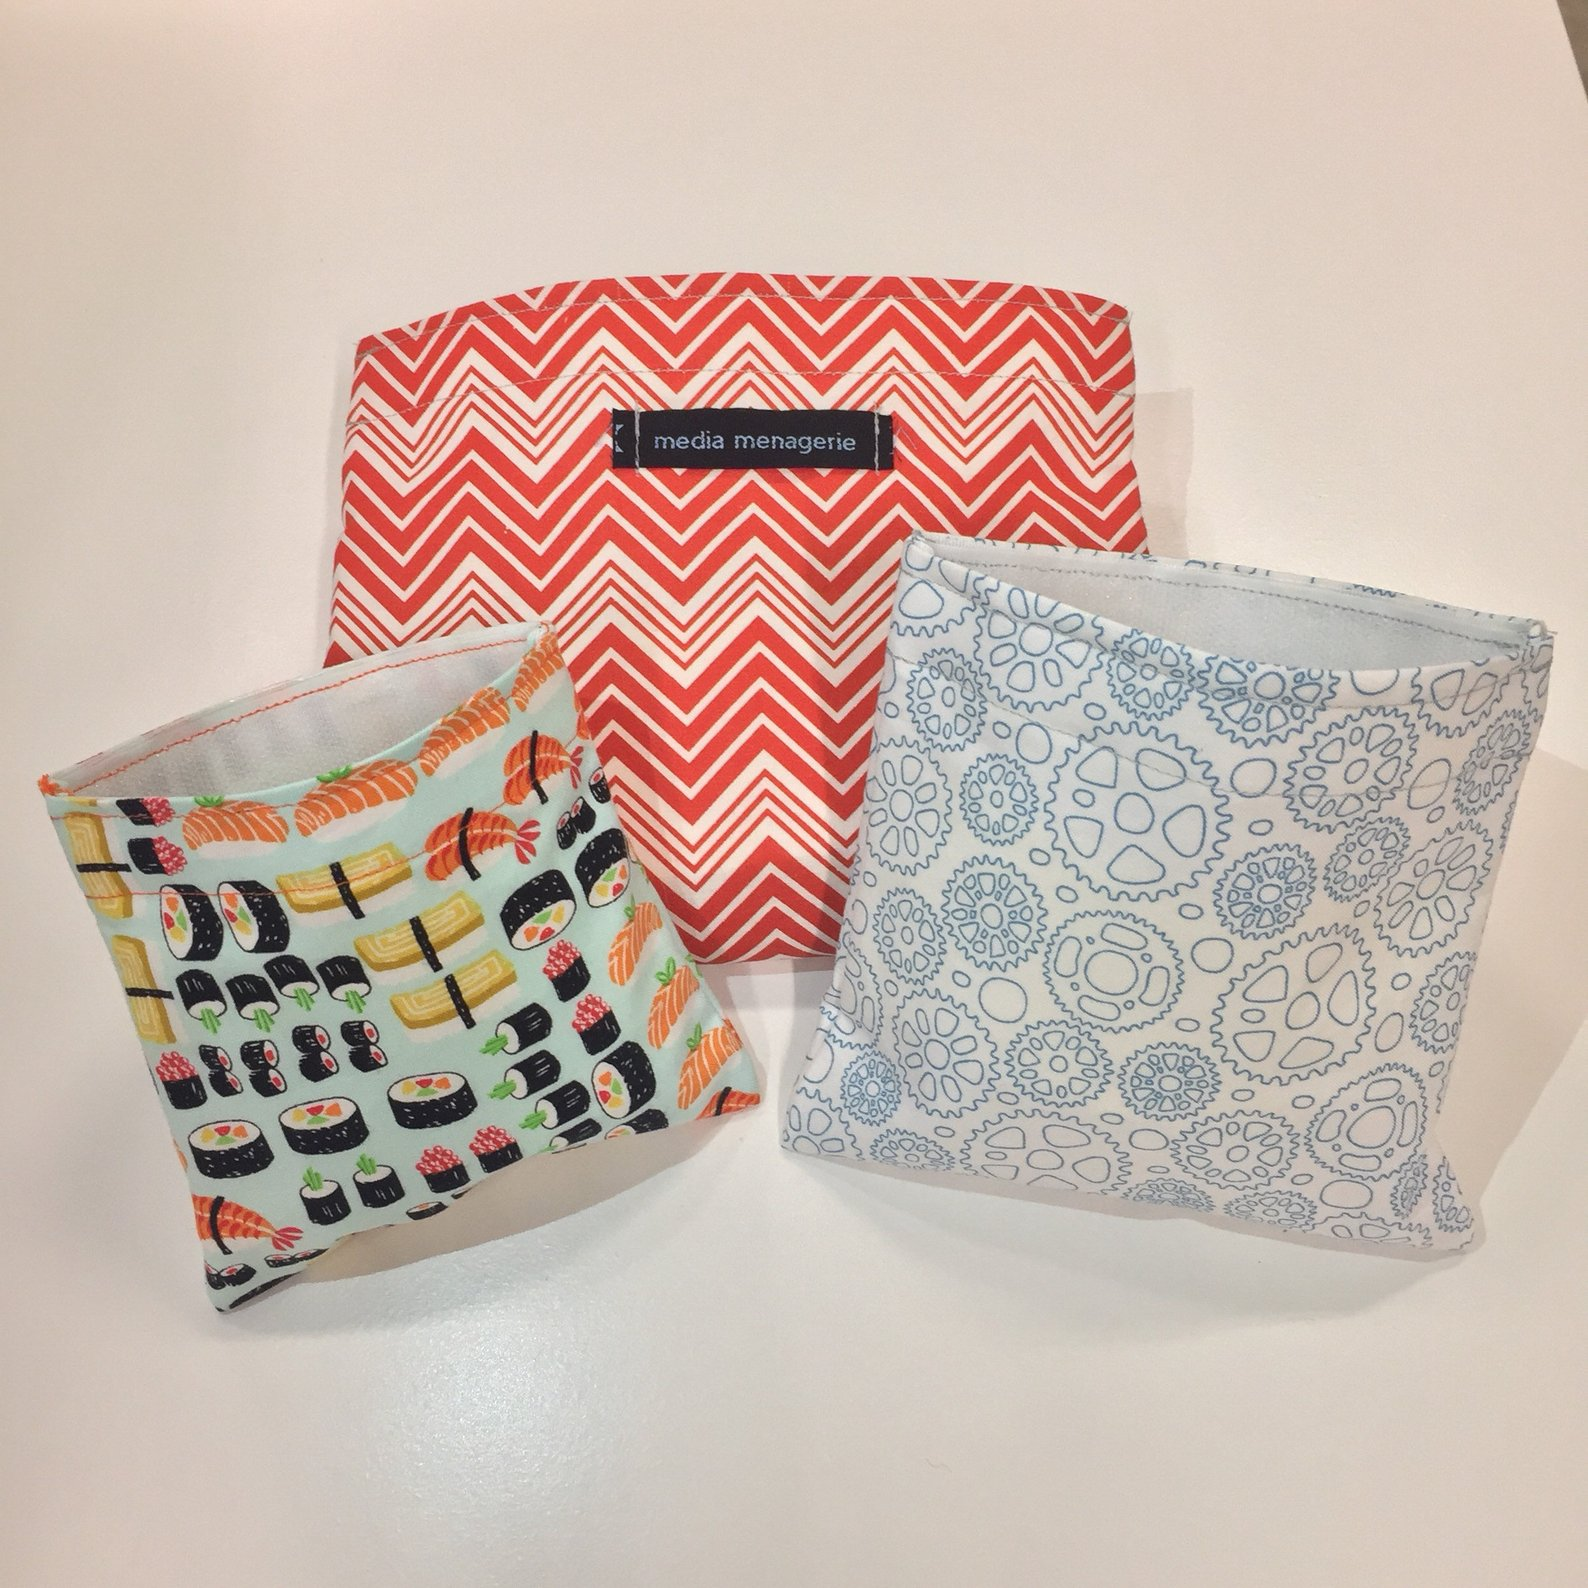 Found on Etsy from MediaMenagerie. Reusable snack bags.